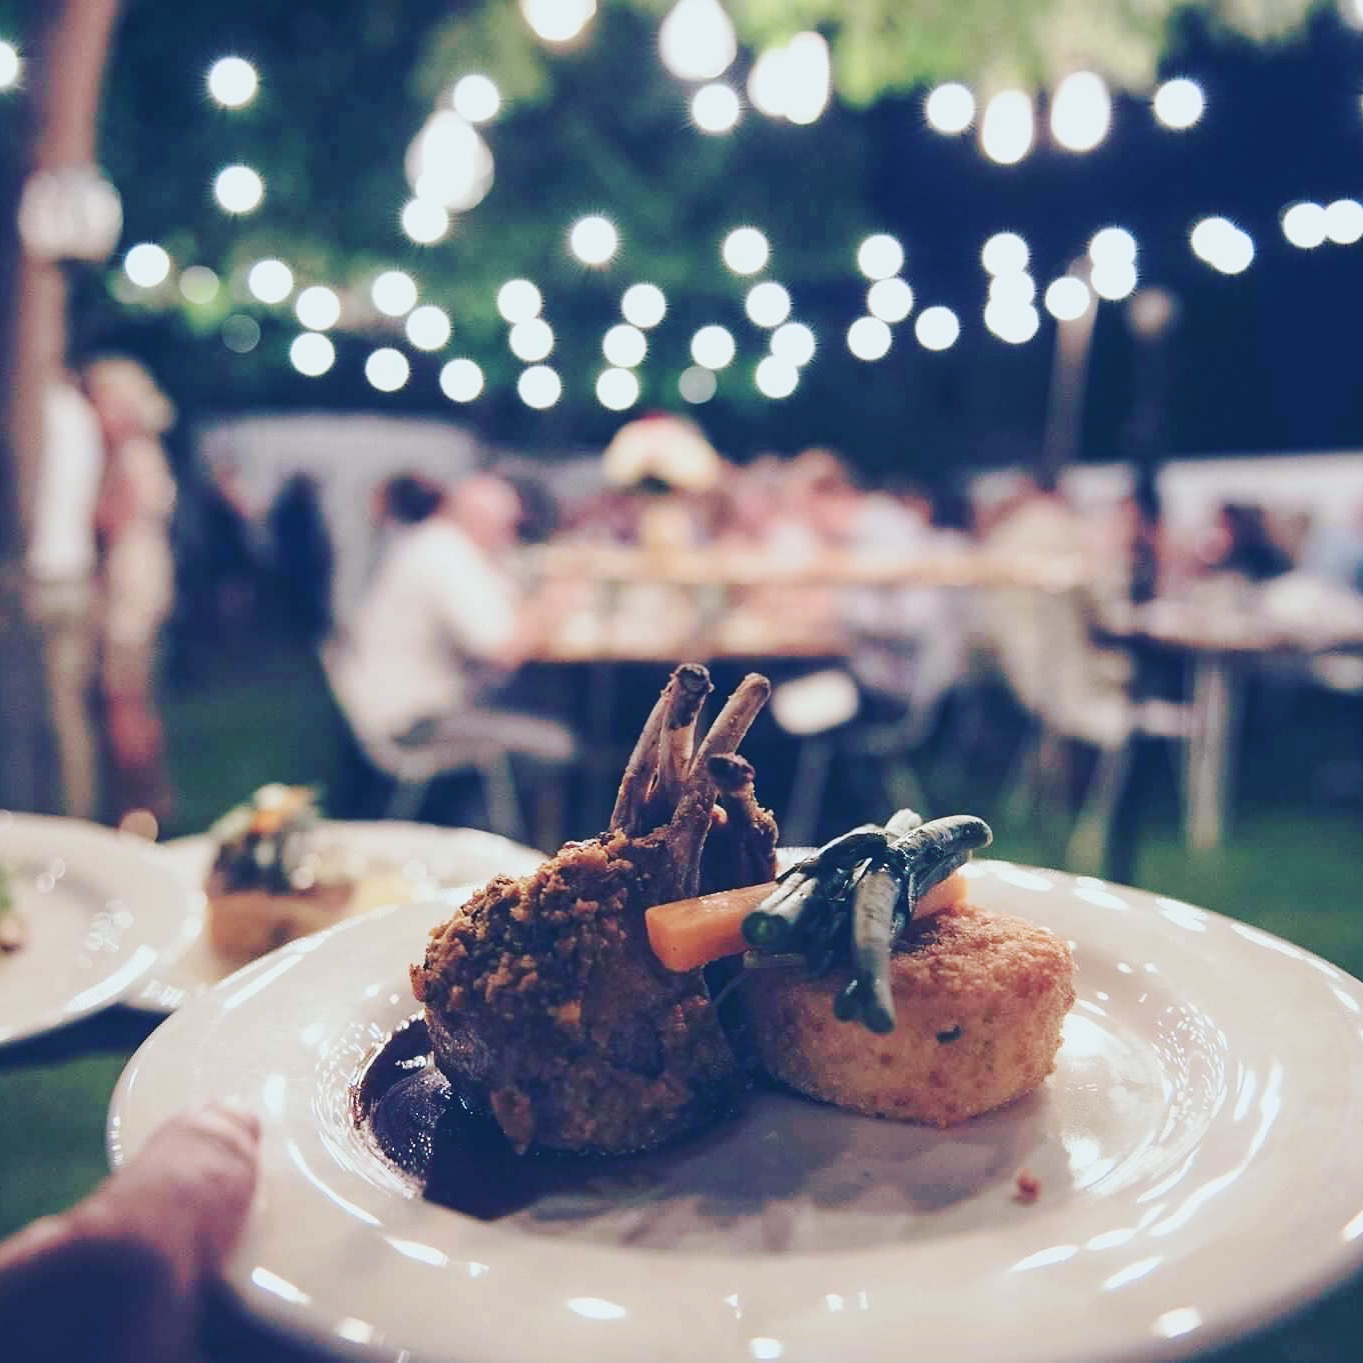 Wedding caterer, wedding catering, perth catering, perth wedding caterer